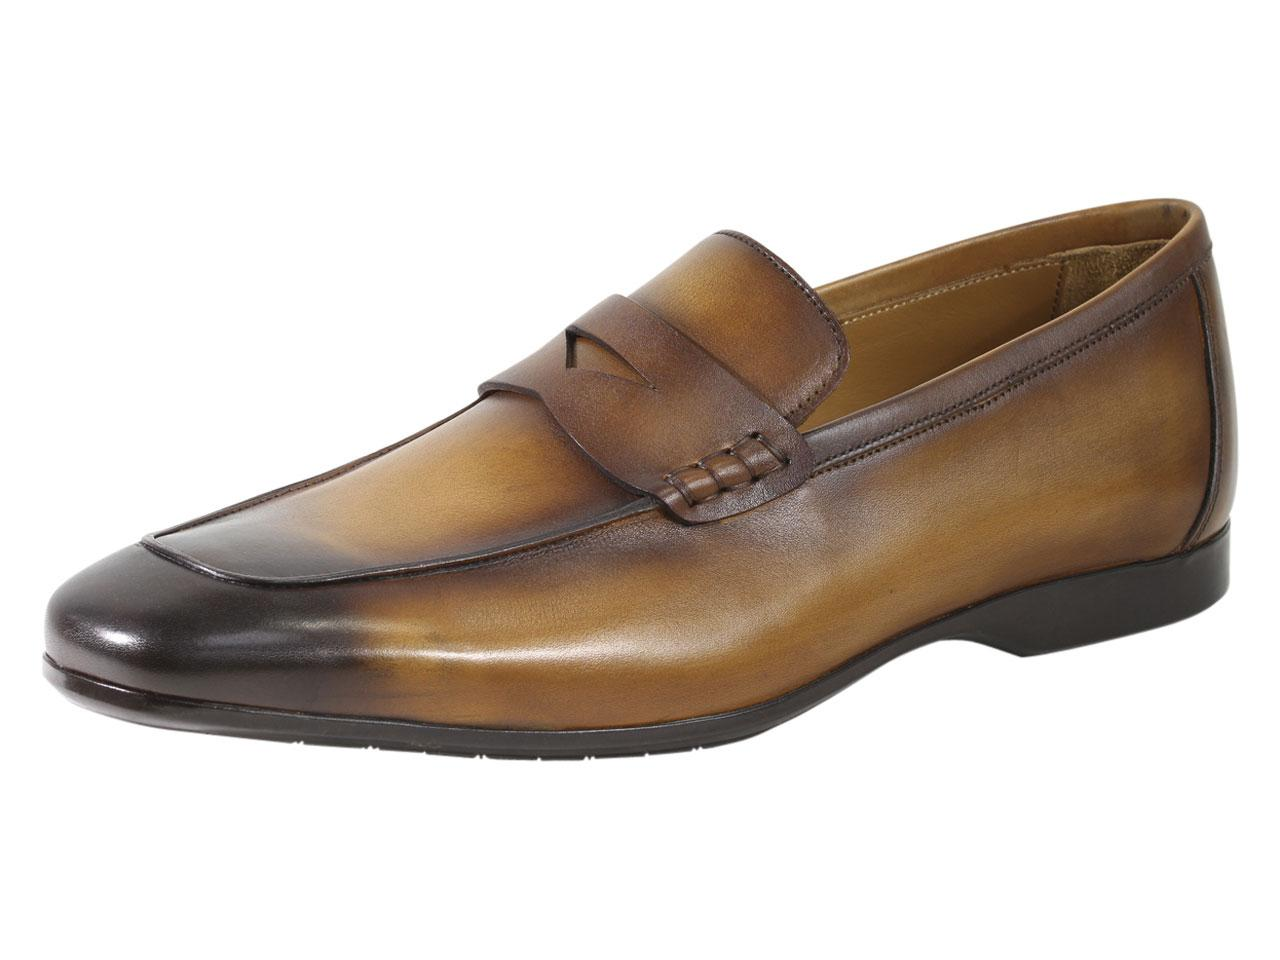 Image of Bruno Magli Men's Margot Penny Loafers Shoes - Brown - 10 D(M) US